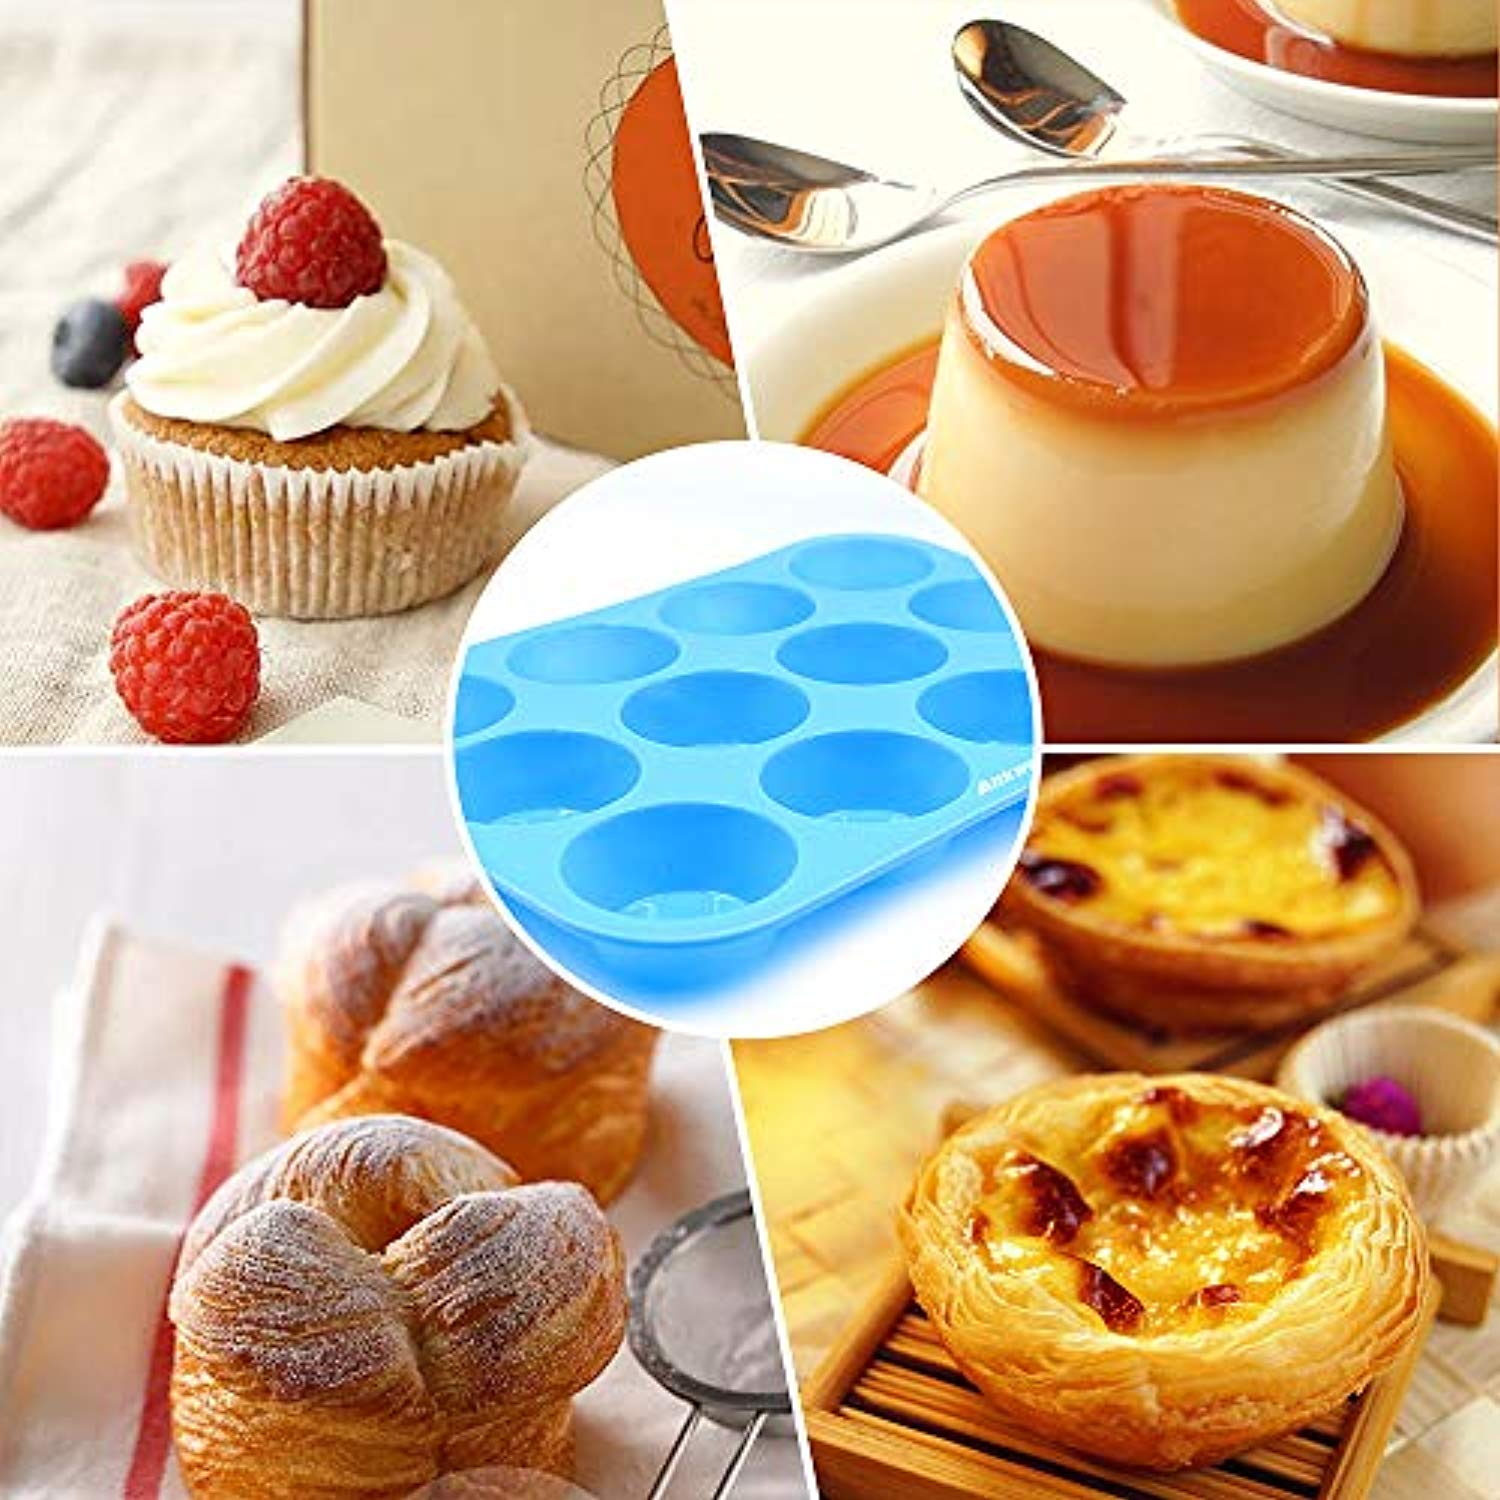 Silicone Muffin Pan Set of 2, Ankway 12+24 Cups Non-stick Silicone Molds Reusable Food Grade Cupcake Baking Pans, BPA Free, Heat Resistant up to 450°F, Dishwasher and Microwave Safe (blue)